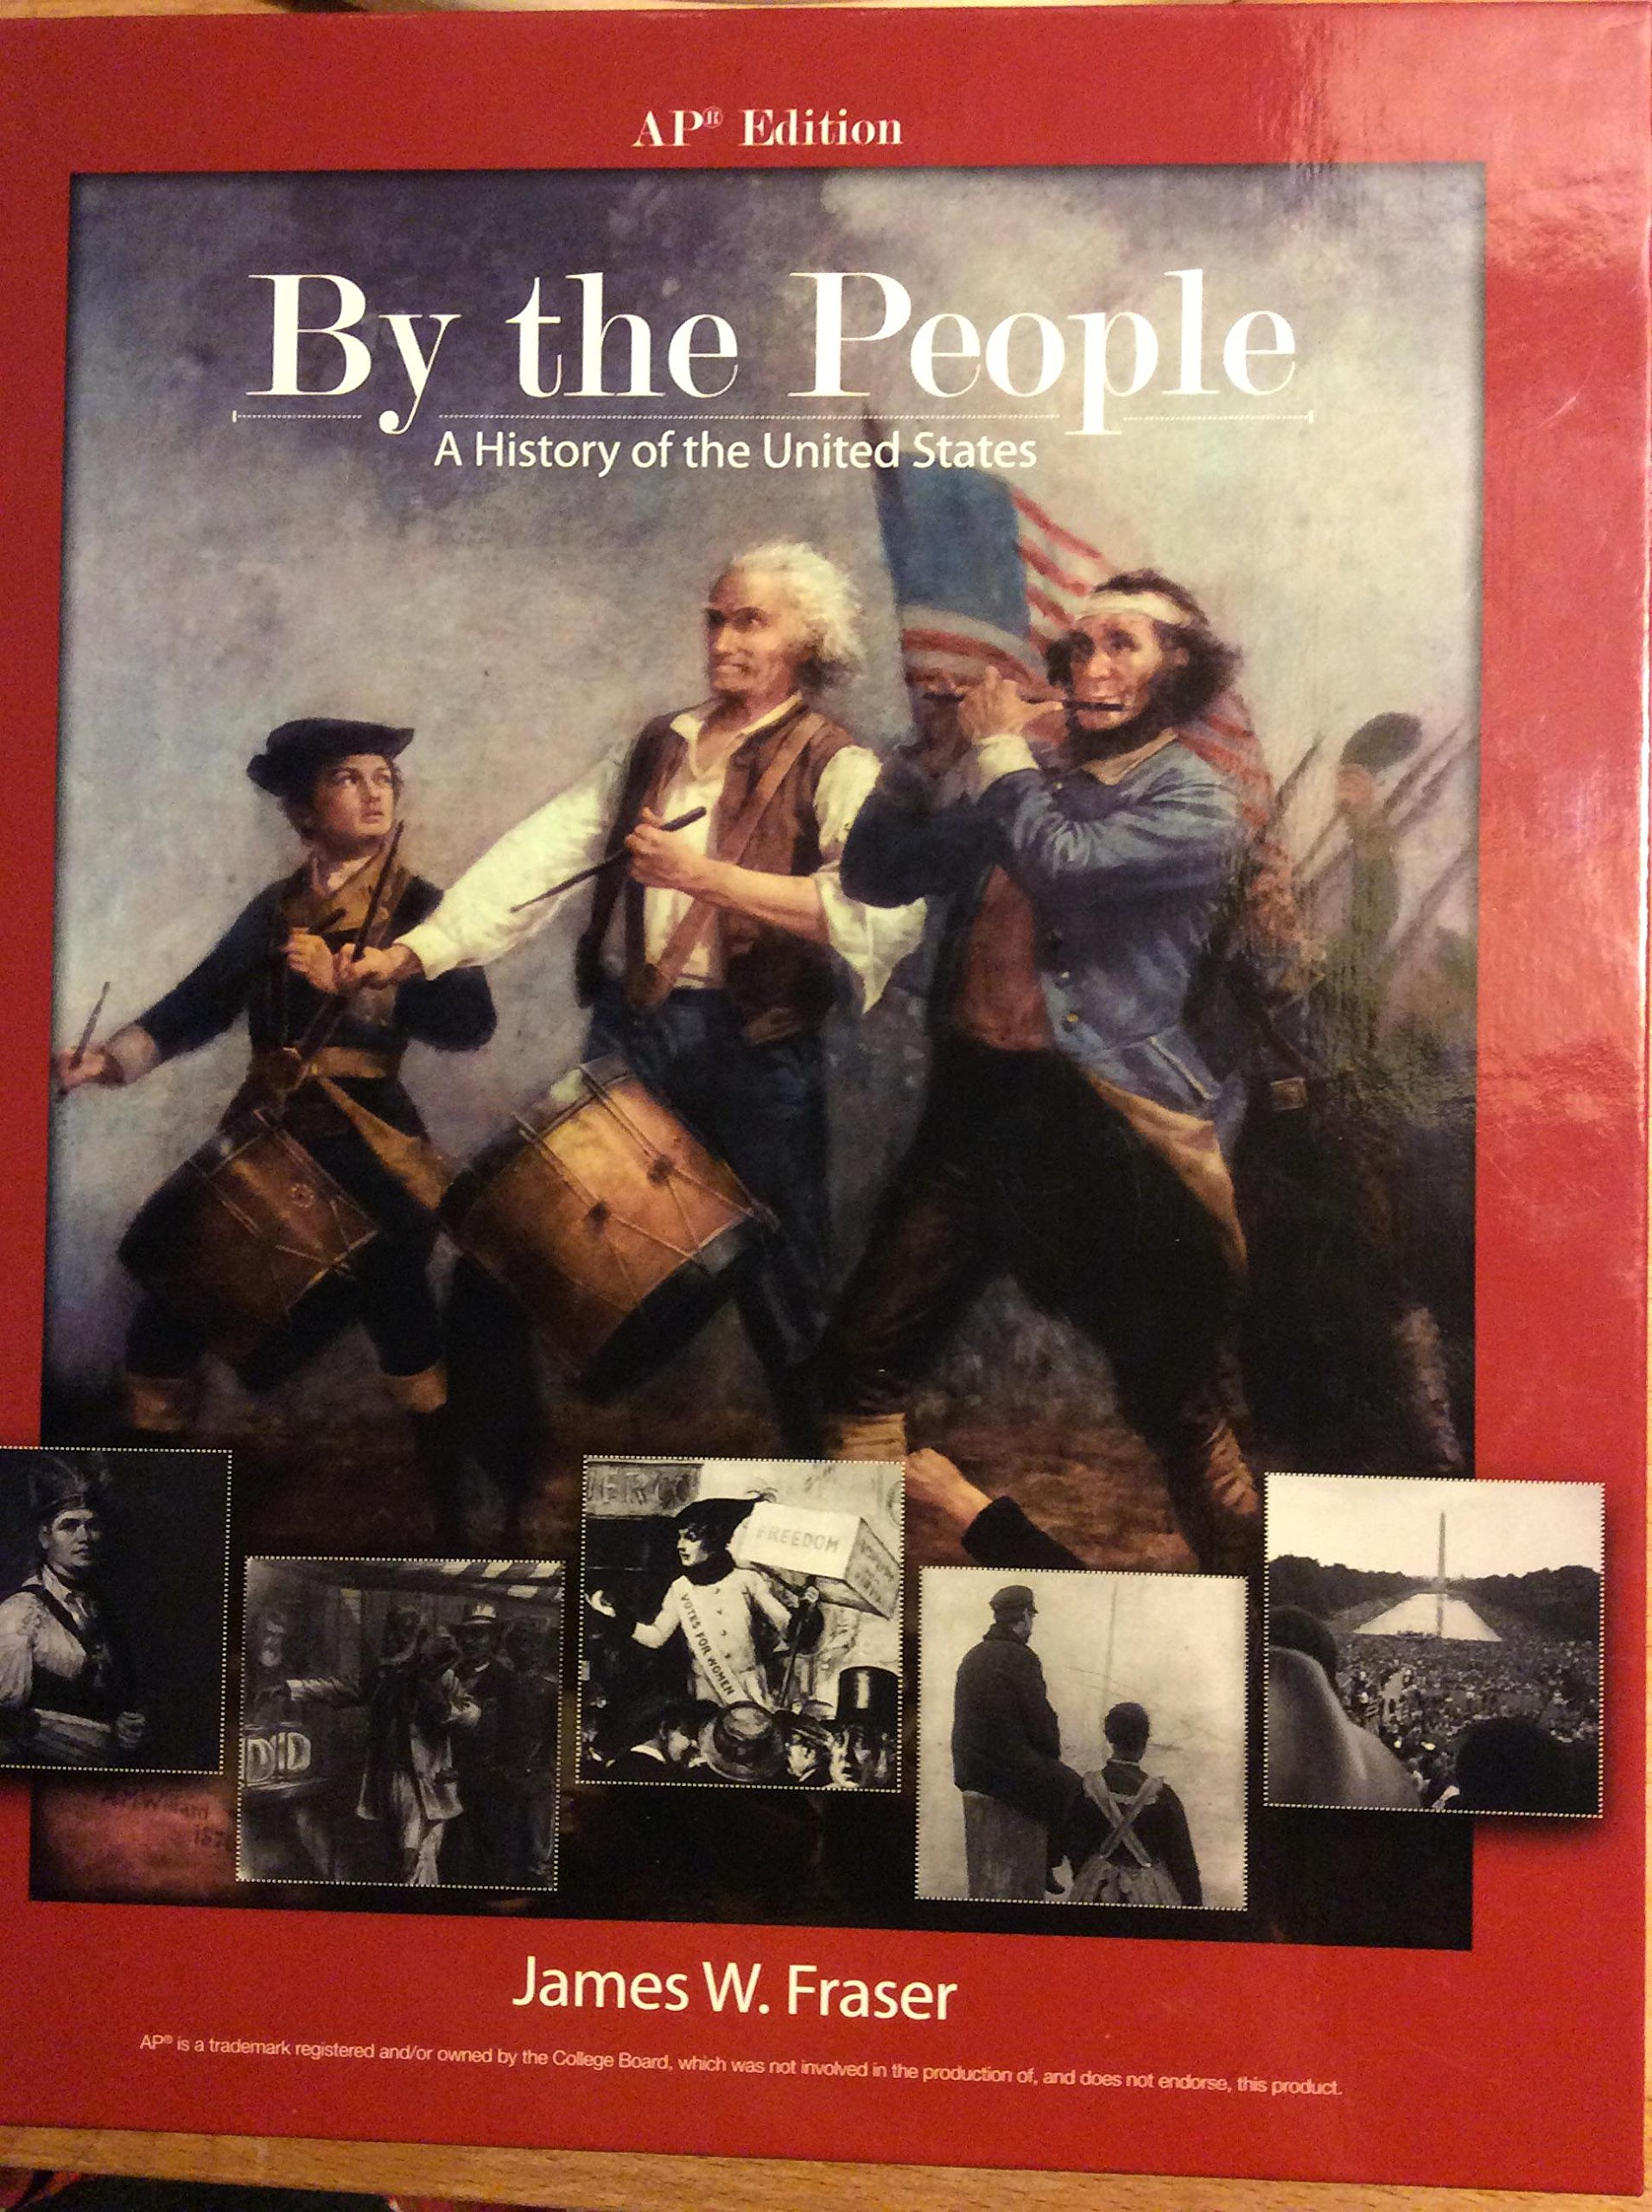 By the People A History of the United States: James Fraser: 9780131366183: Amazon.com: Books